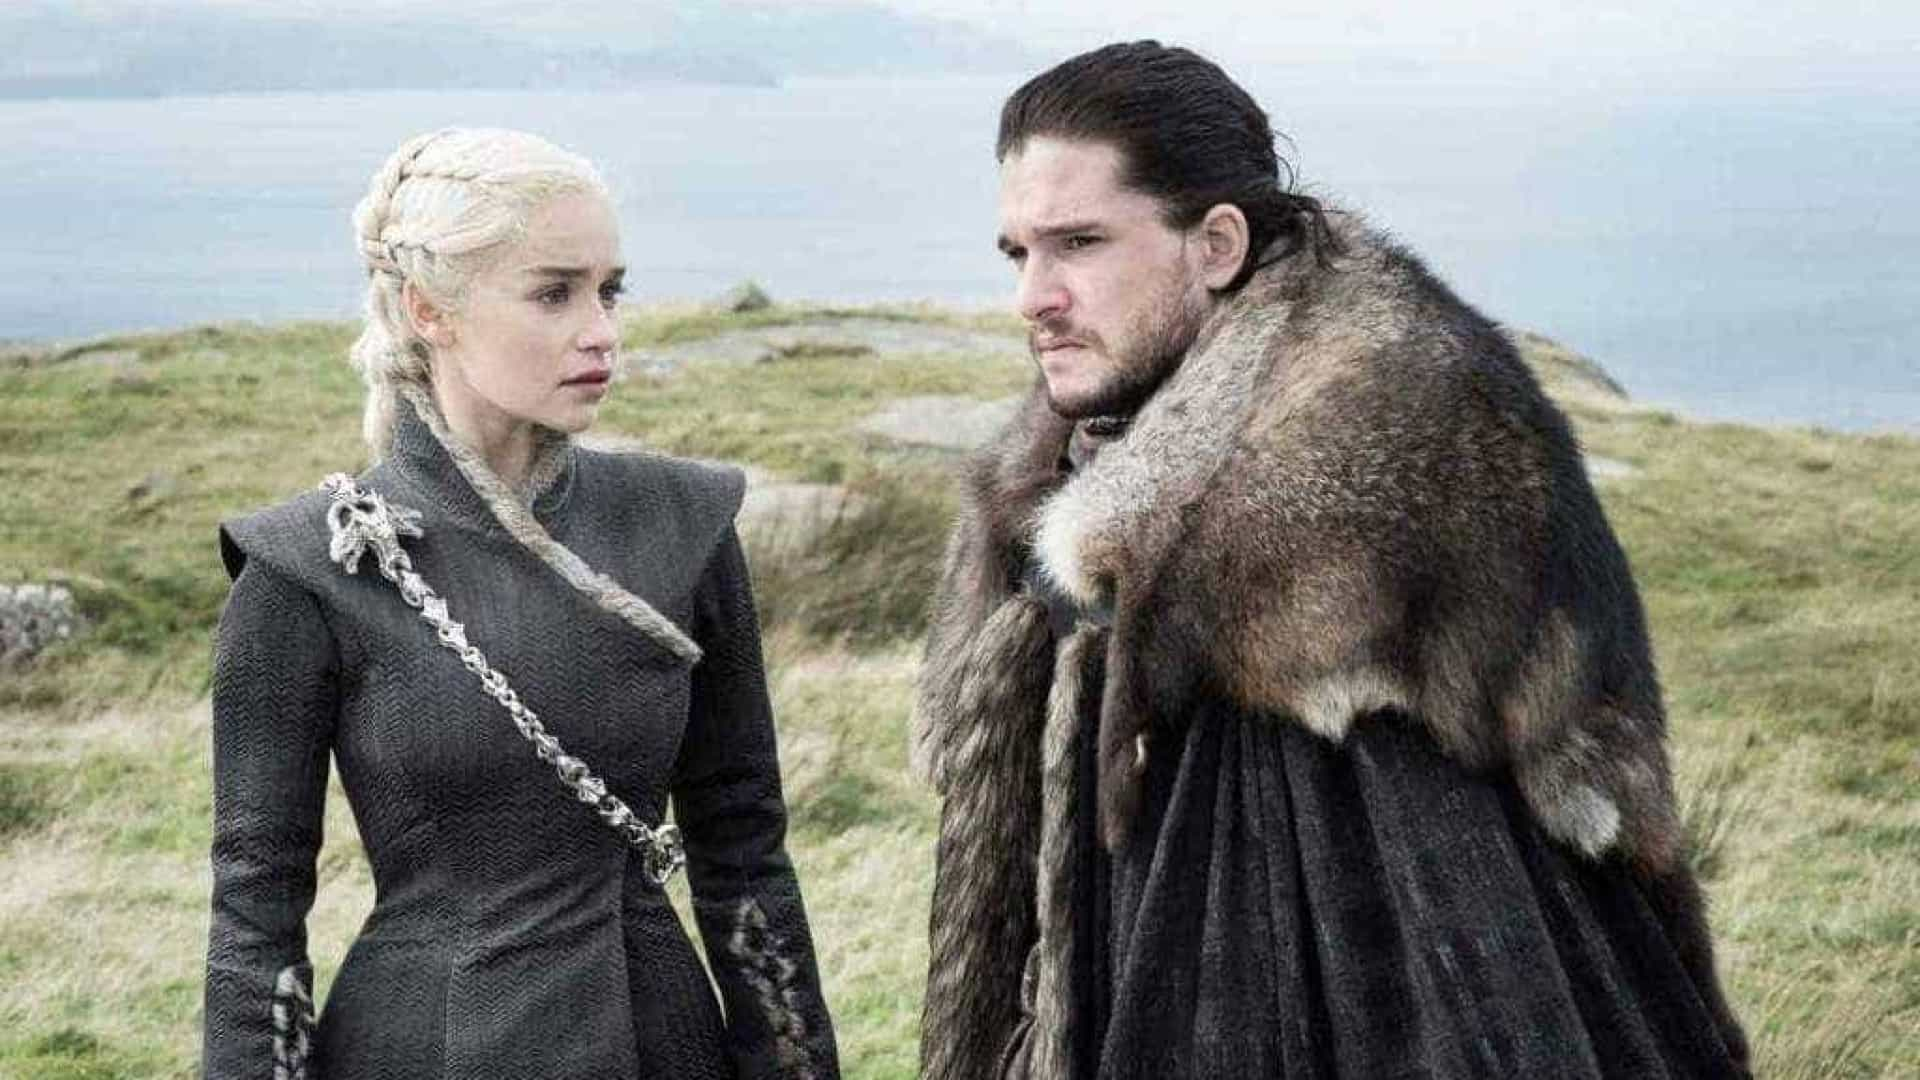 Temporada de 'Game of Thrones' ganha data de estreia e novo teaser